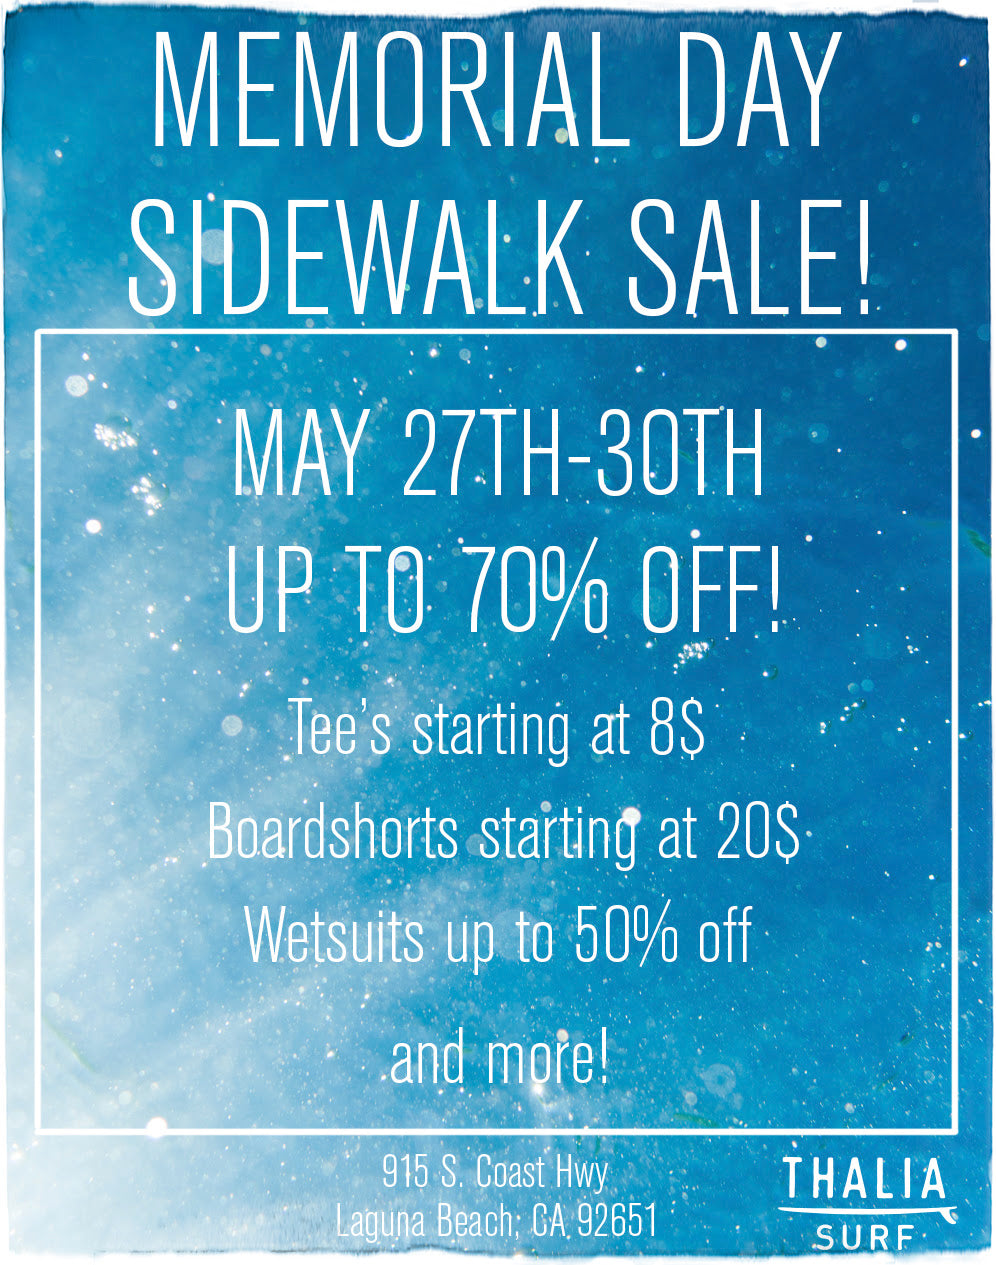 Memorial Day Sidewalk Sale